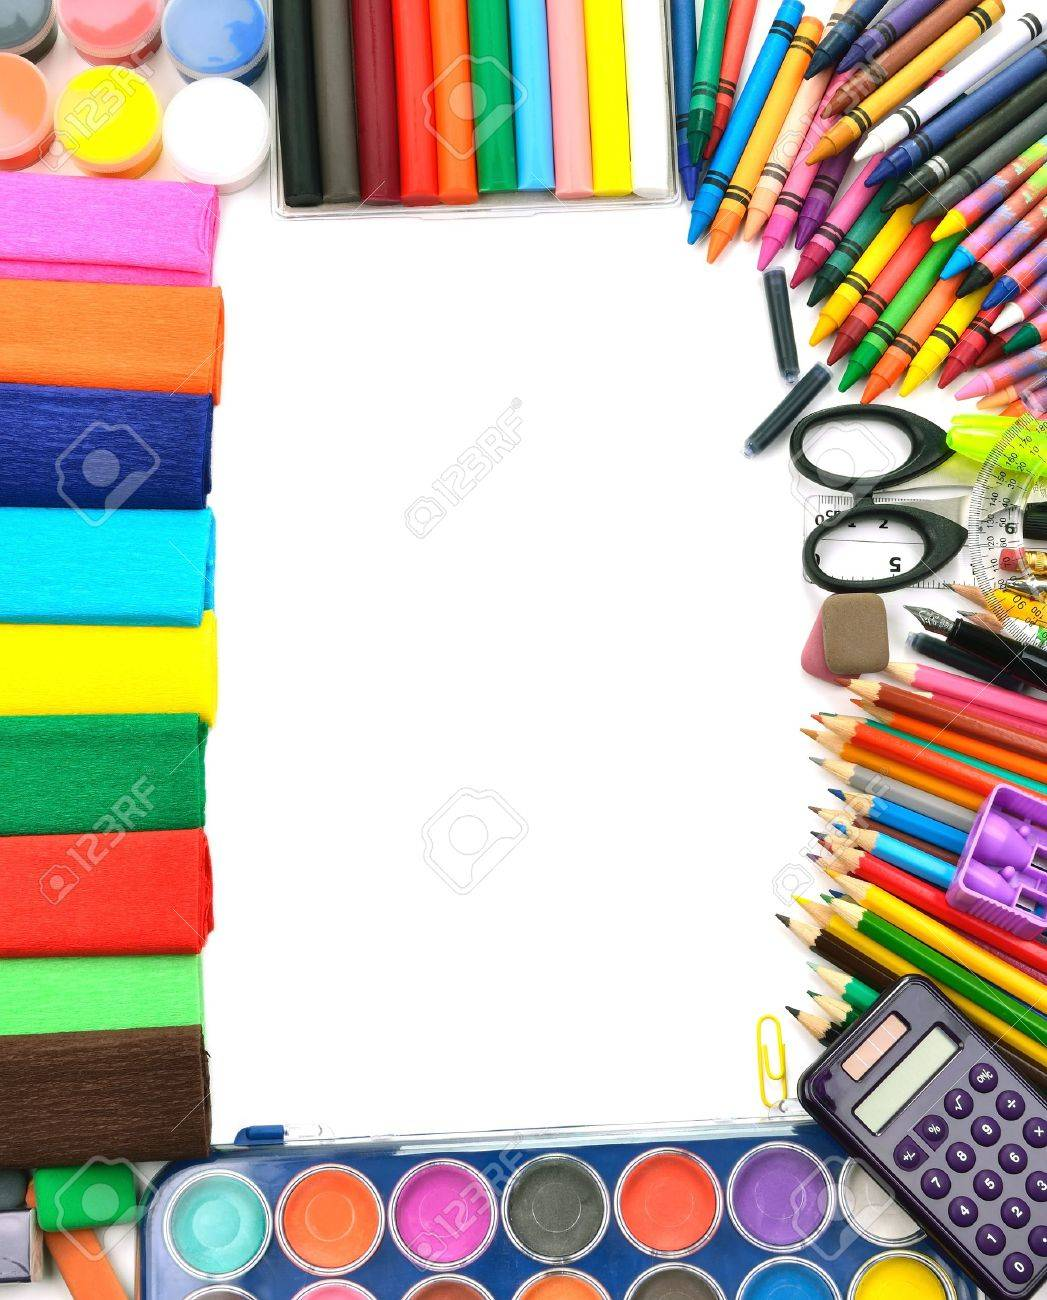 School and office supplies frame, on white background, back to school Stock Photo - 15210530